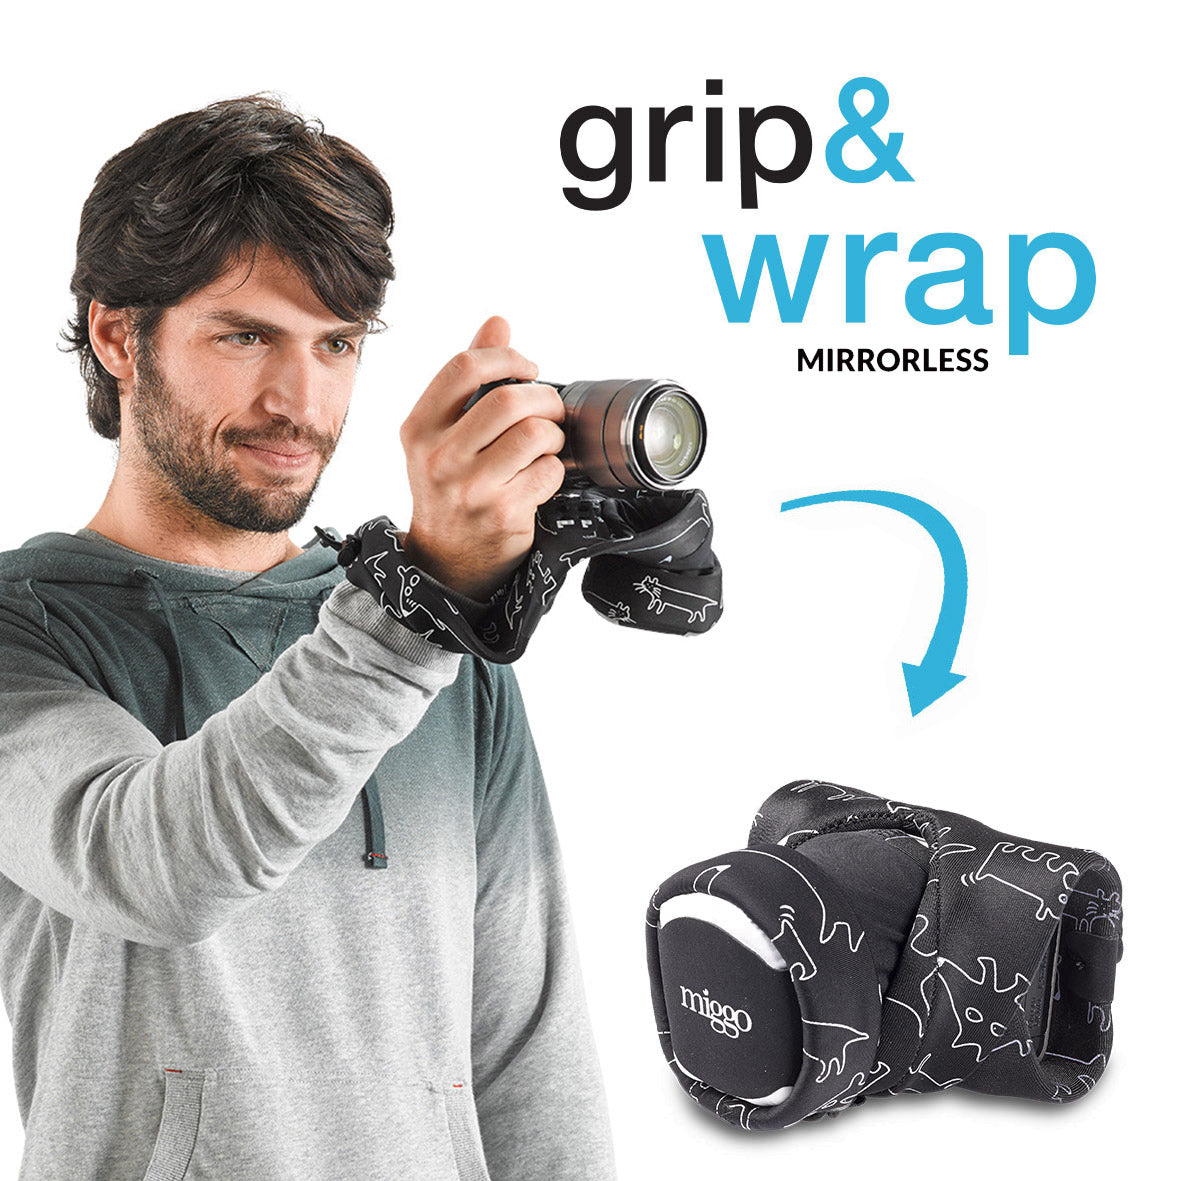 Serves as a camera grip (wrist strap) which morphs into a compact and padded camera carrier.